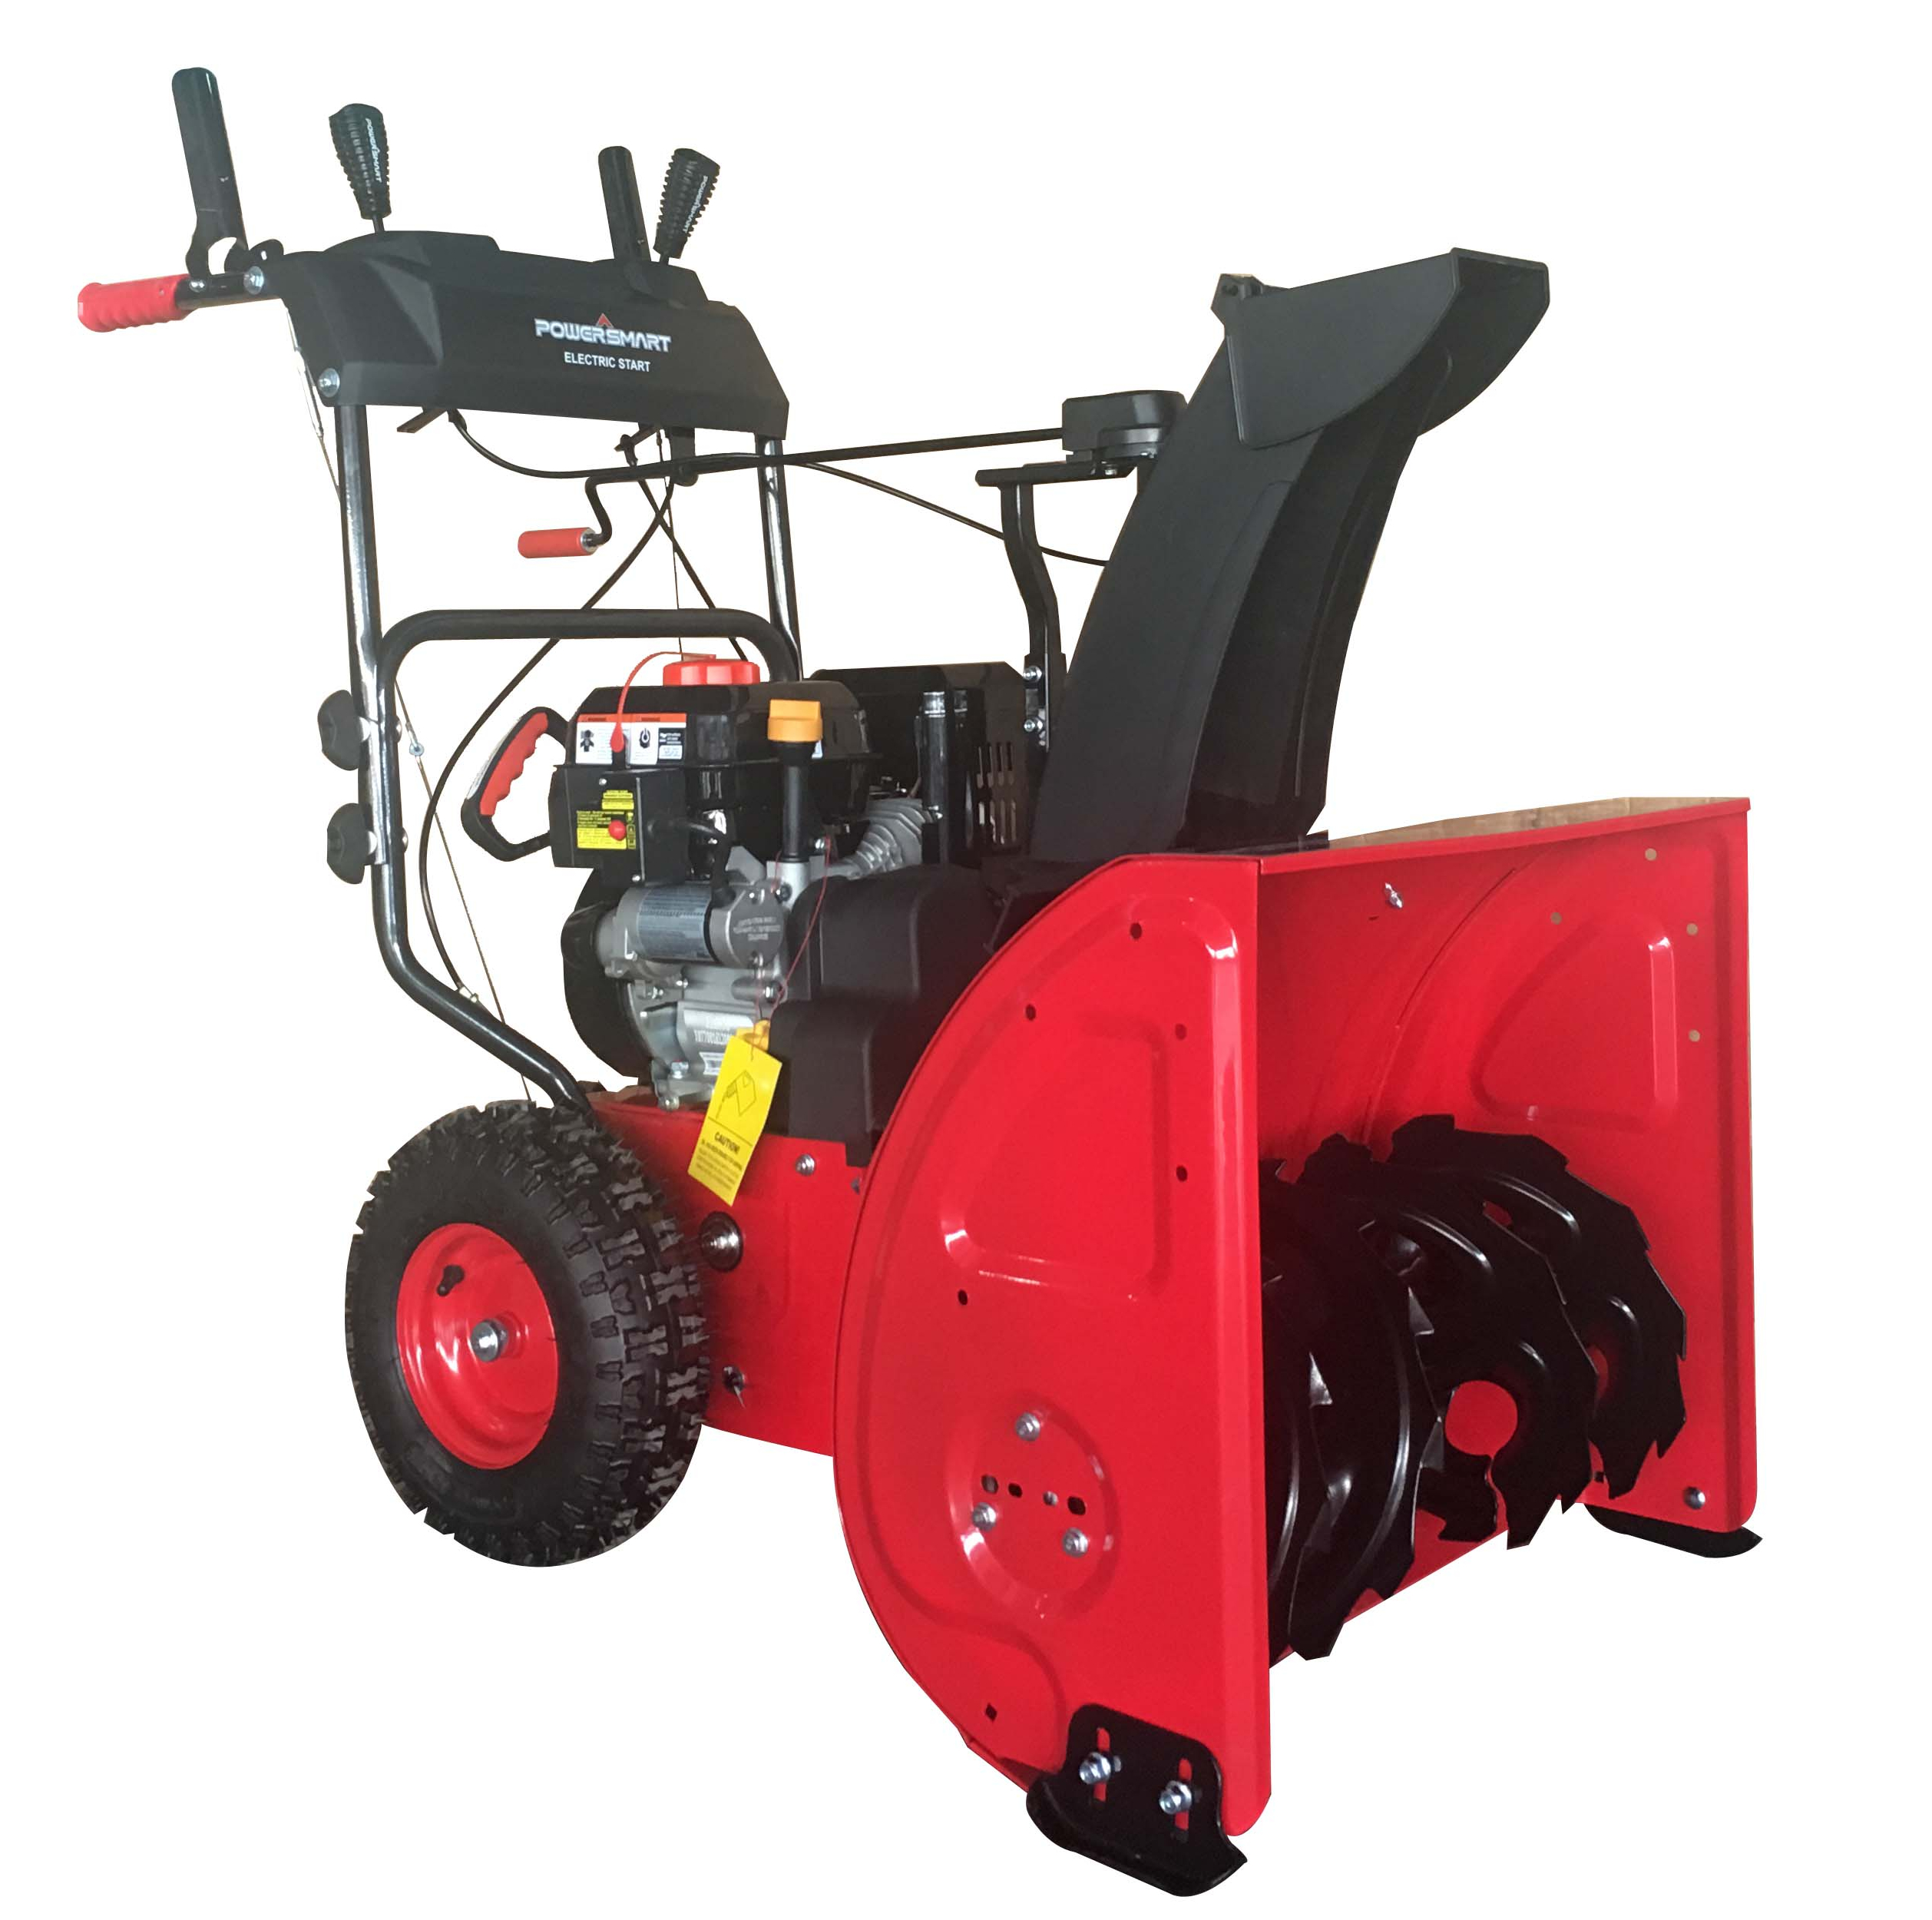 DB72024PA 24 inch 2-Stage Gas Snow Blower with Power Assist